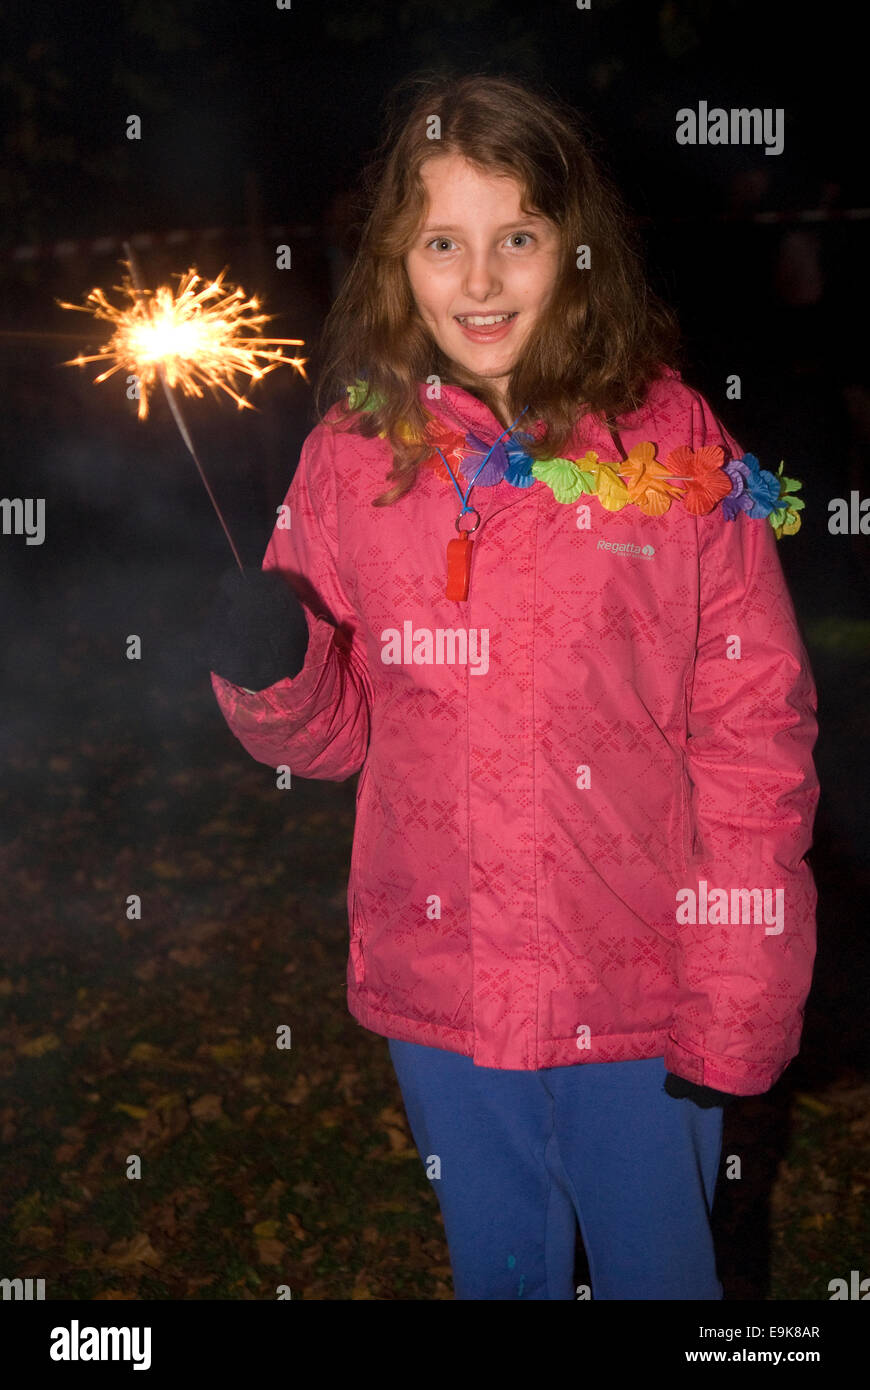 Young girl playing with sparkler at the end of Liphook Carnival, 25 October 2014, Liphook, Hampshire, UK. Stock Photo